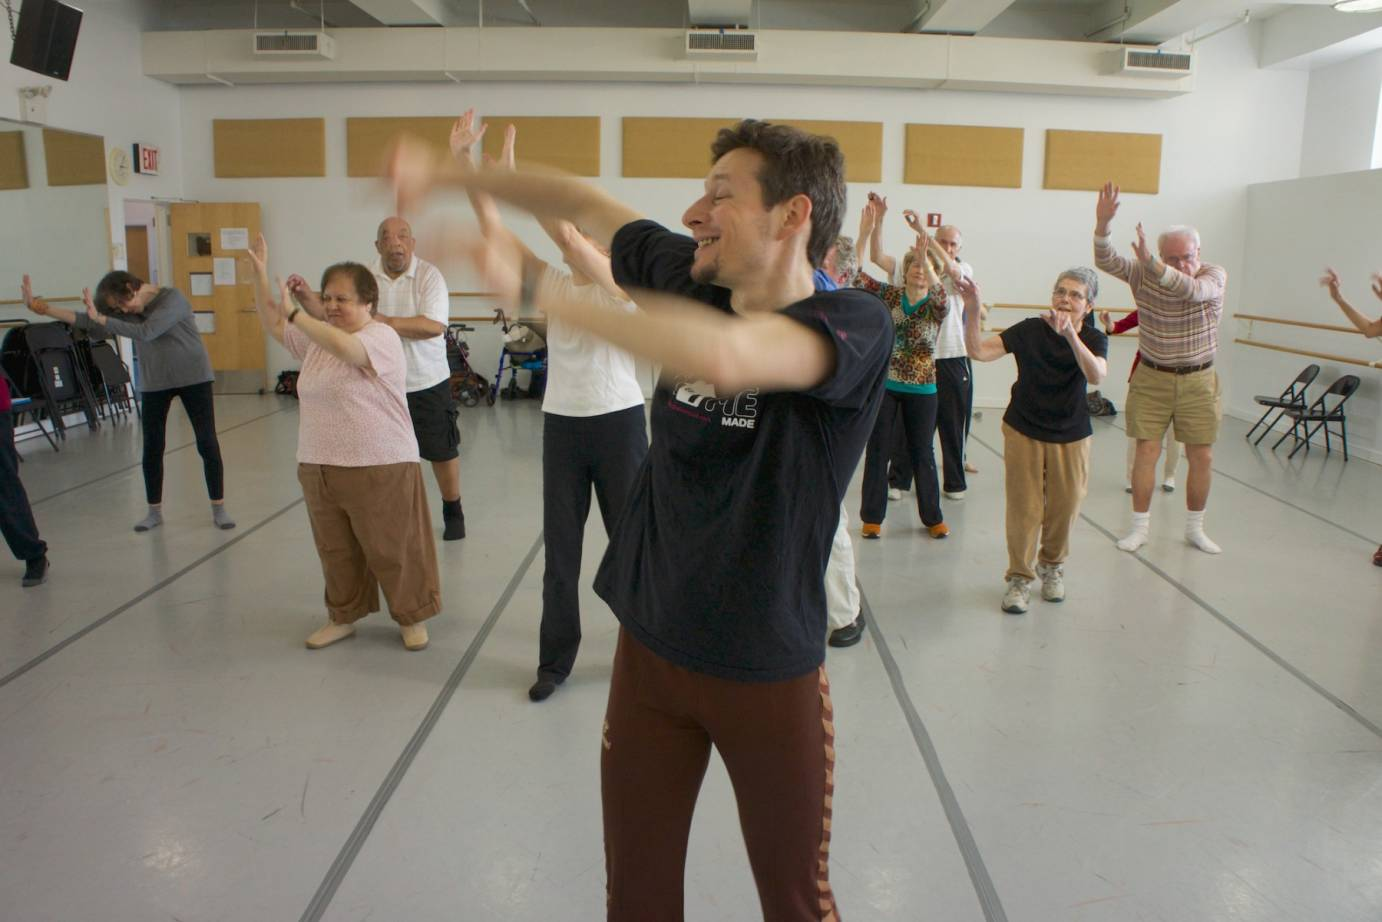 Artist David Leventhal leads a Dance for PD class at Mark Morris Dance Center as depicted in the film